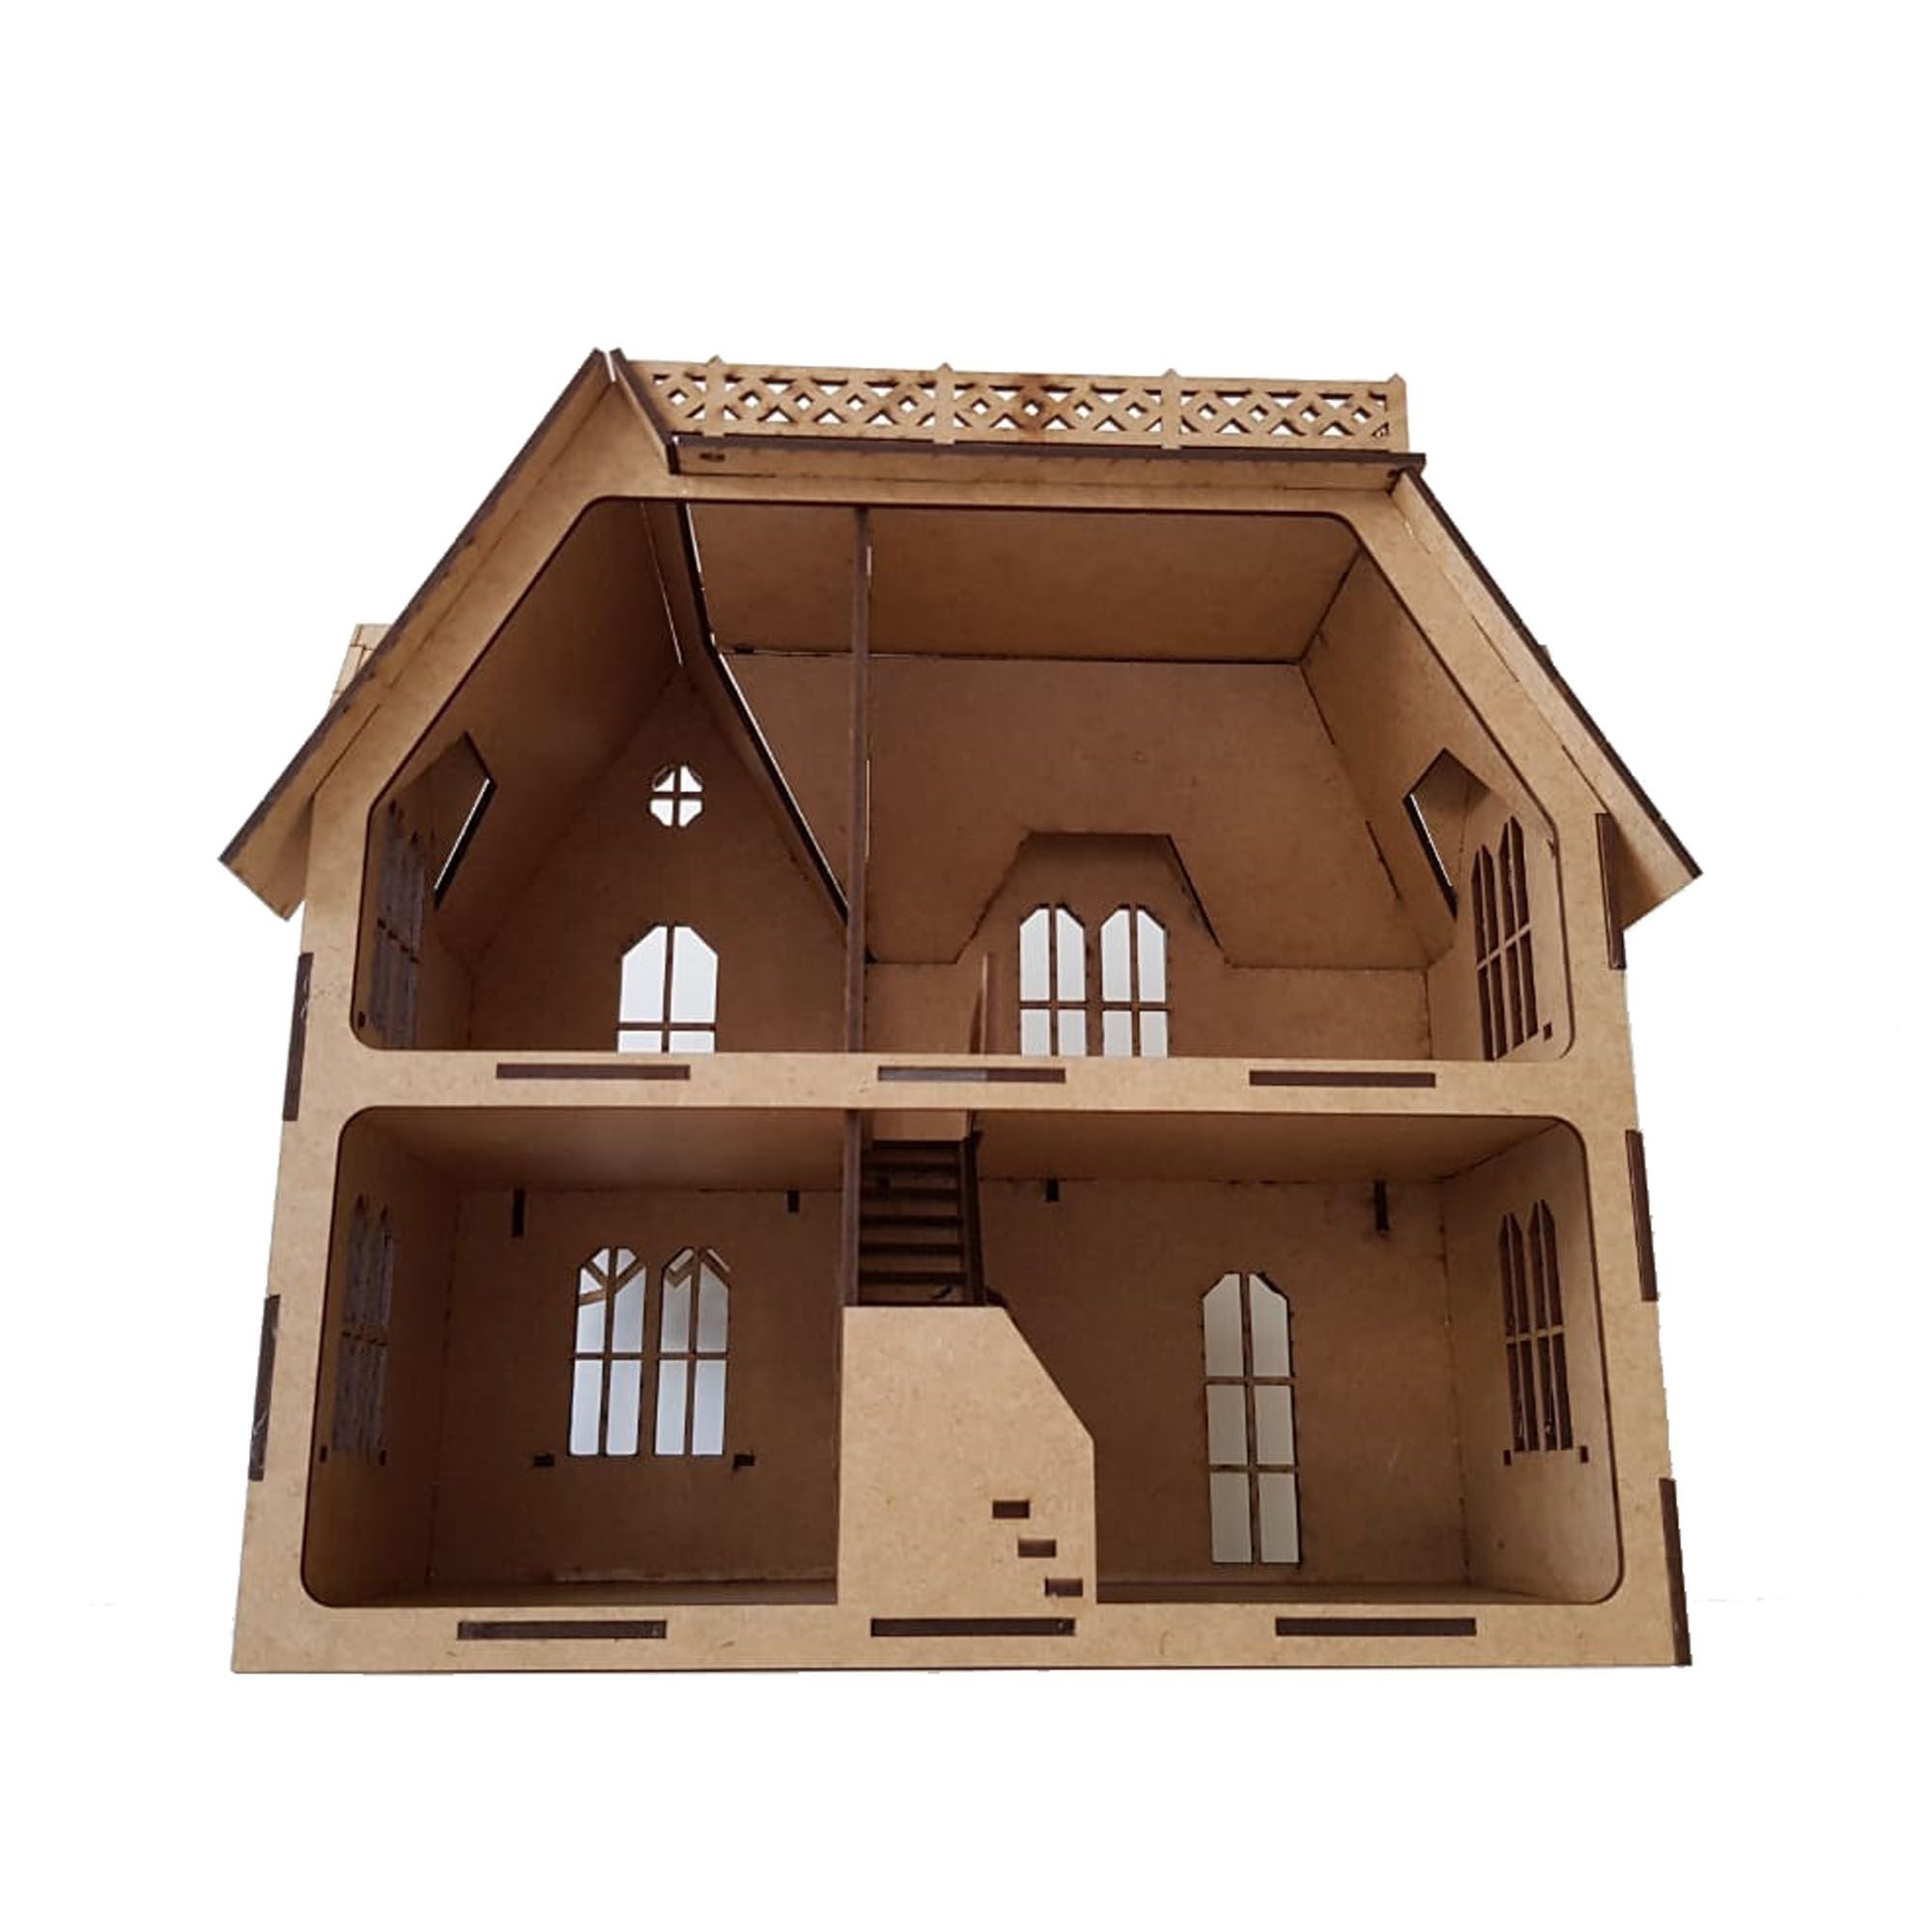 Casa De Bonecas Modelo C15 Para Polly, Barbie Pocket e Similares